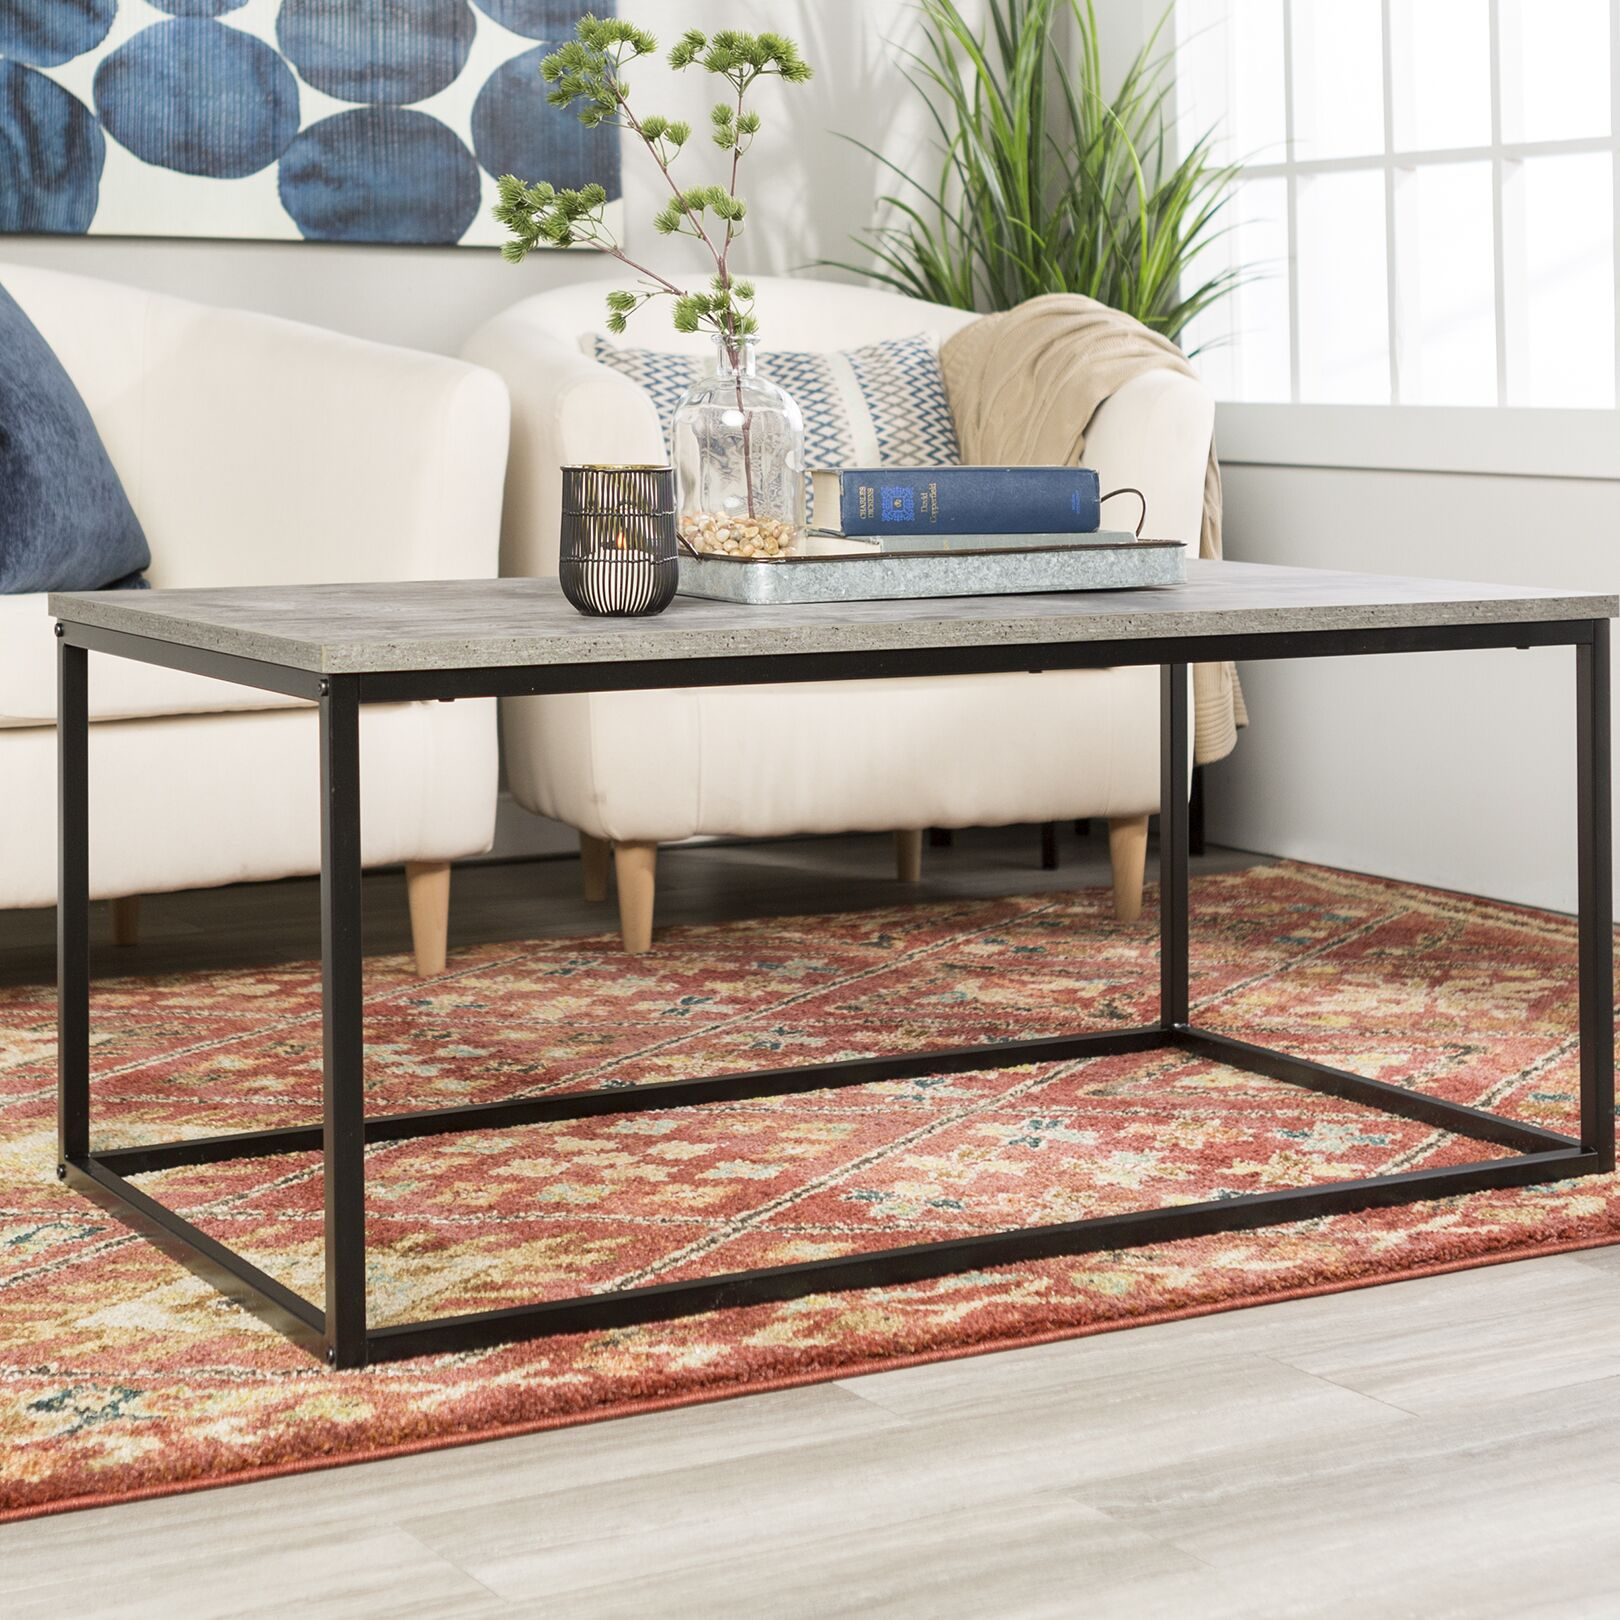 Arianna Coffee Table Table Top Color: Dark Concrete